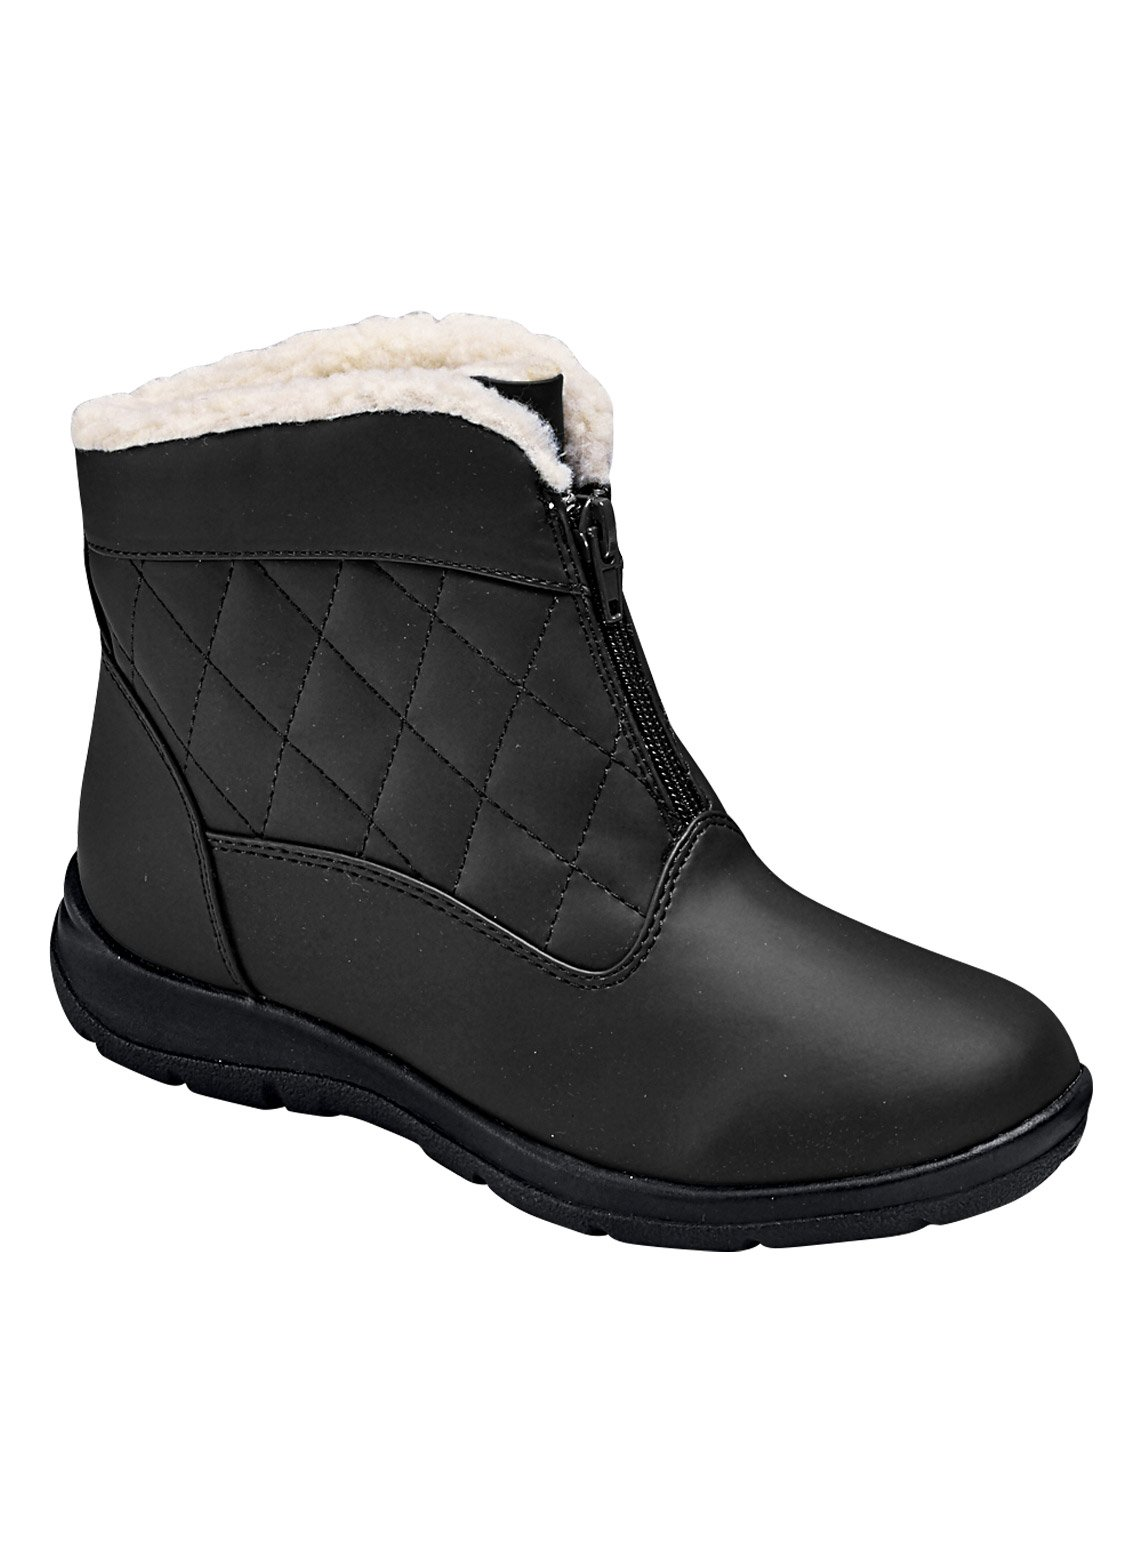 Carol Wright Gifts Quilted Boot, Black, Size 7 (Wide)